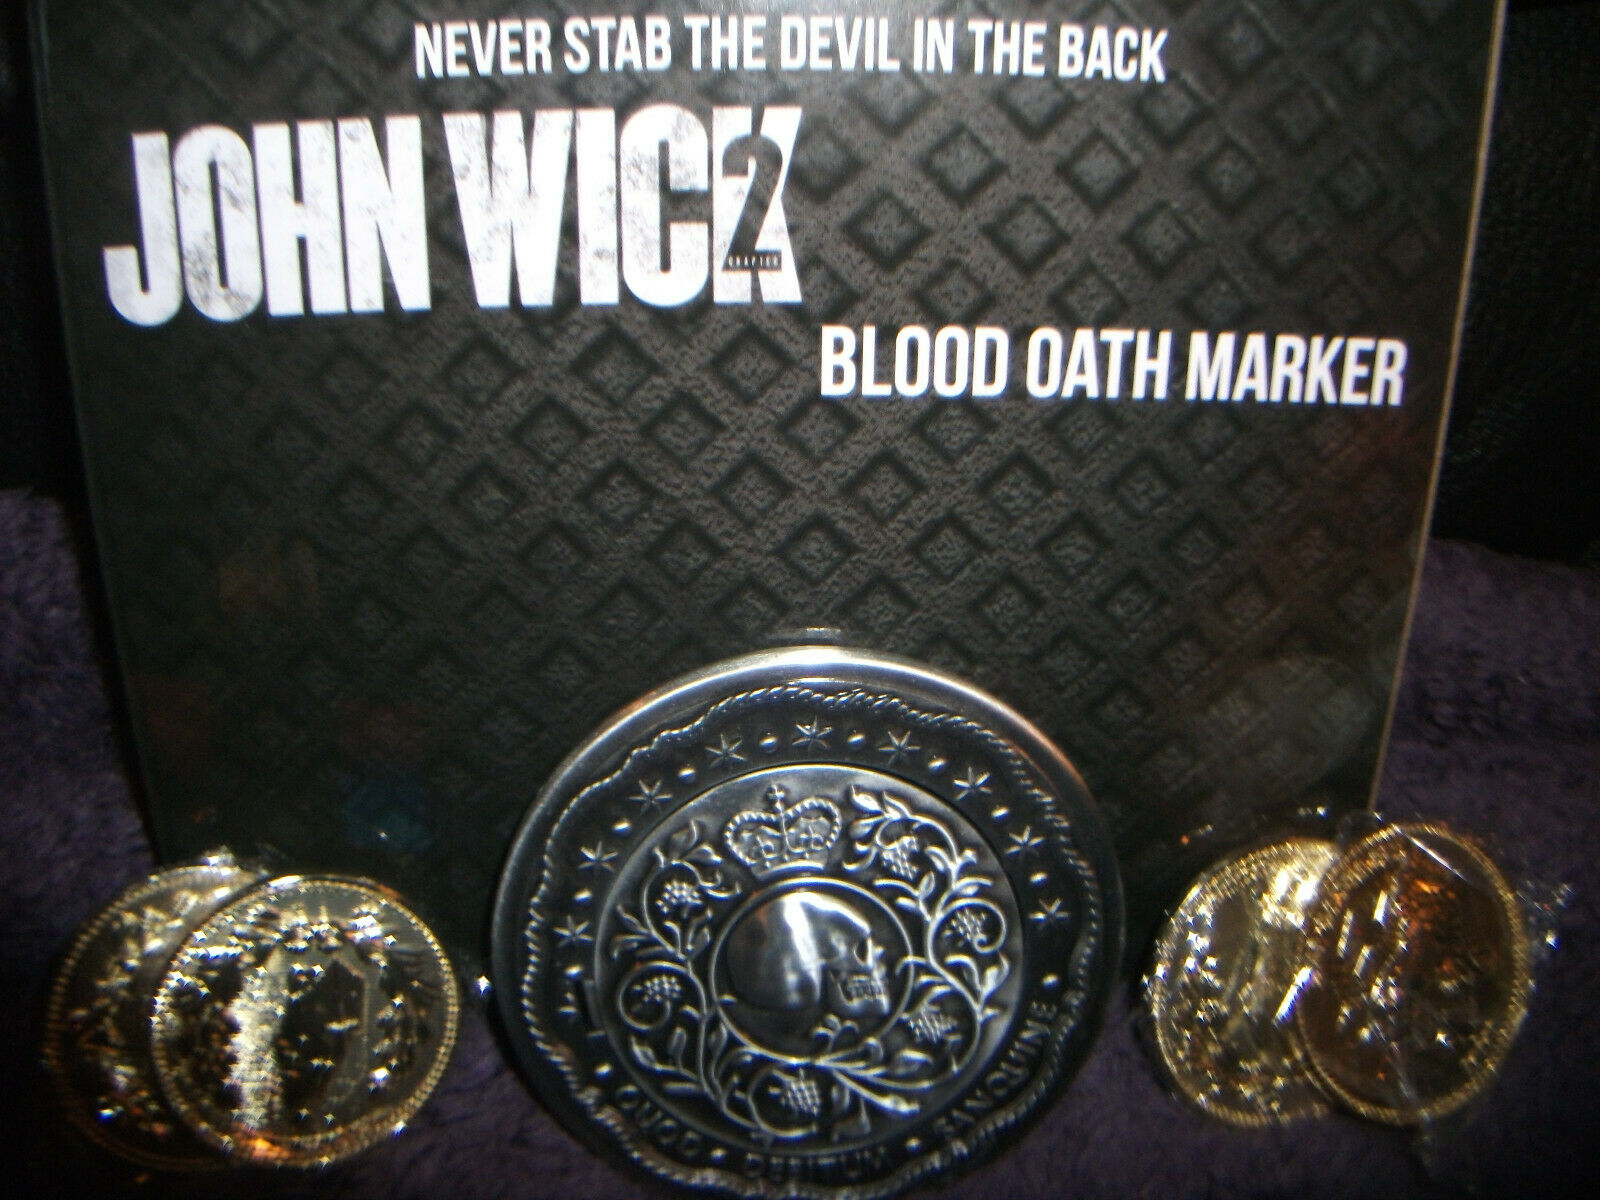 John Wick 2 Blood Oath Marker 1 1 Official Movie Replica Set OFFICIALLY LICENSED